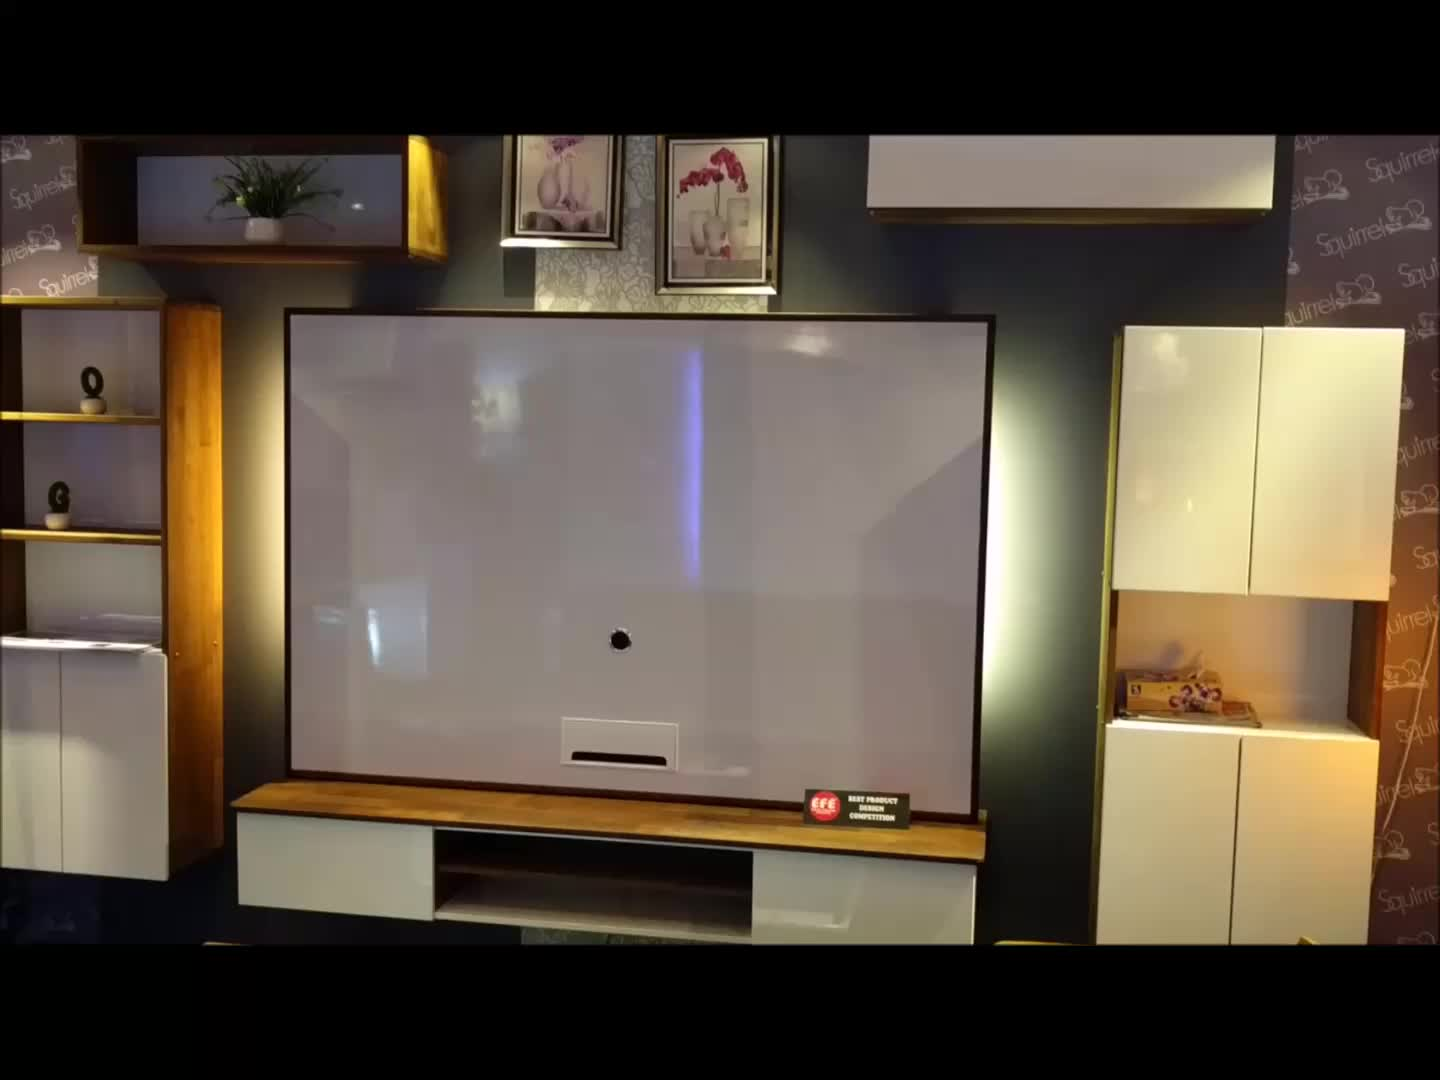 Simple Design Wall Mounted Living Room Wooden Mdf Cabinet